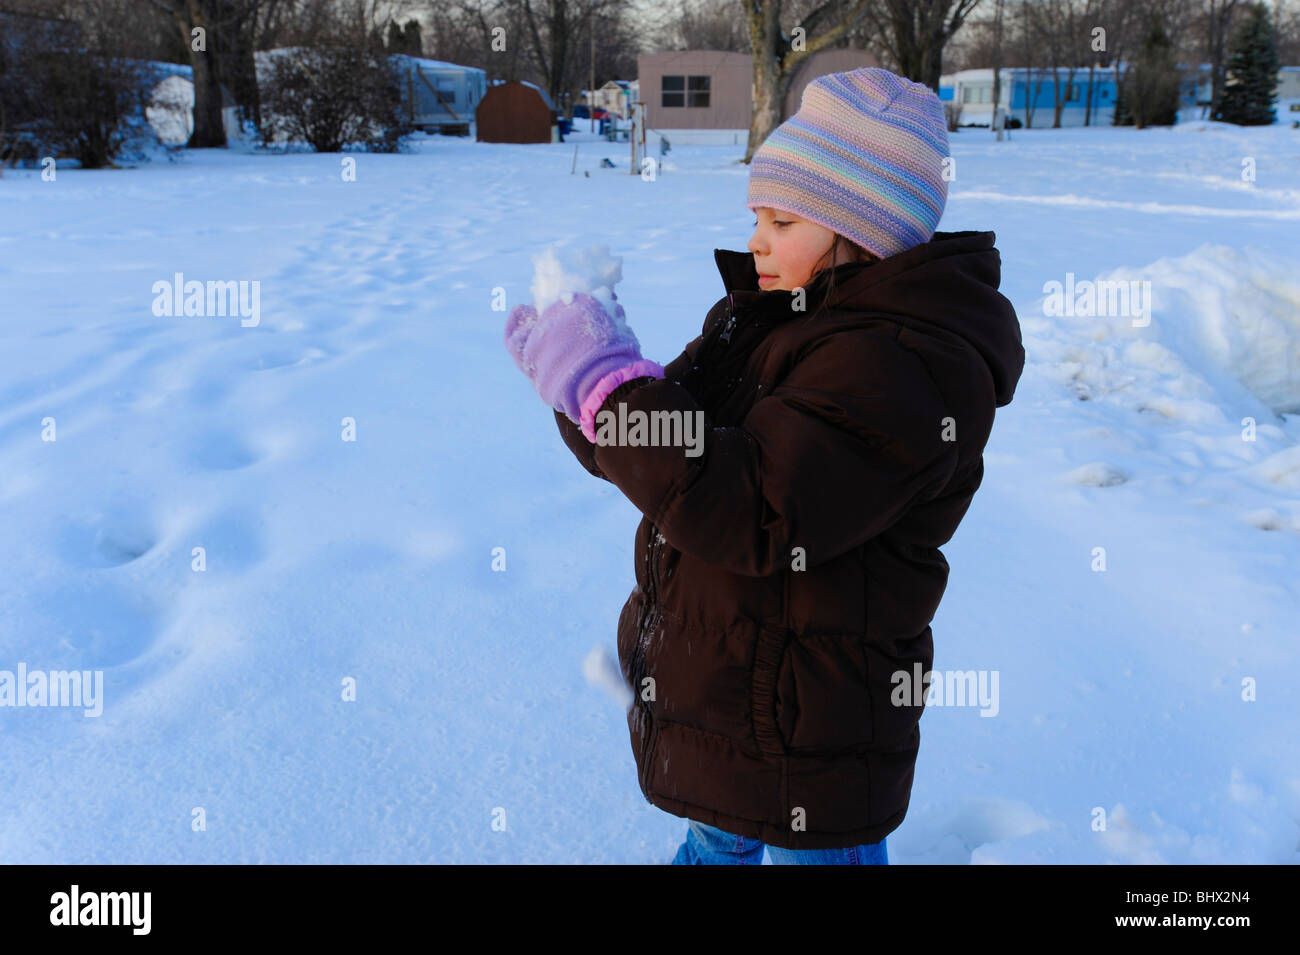 7 year old girl making snowball - Stock Image